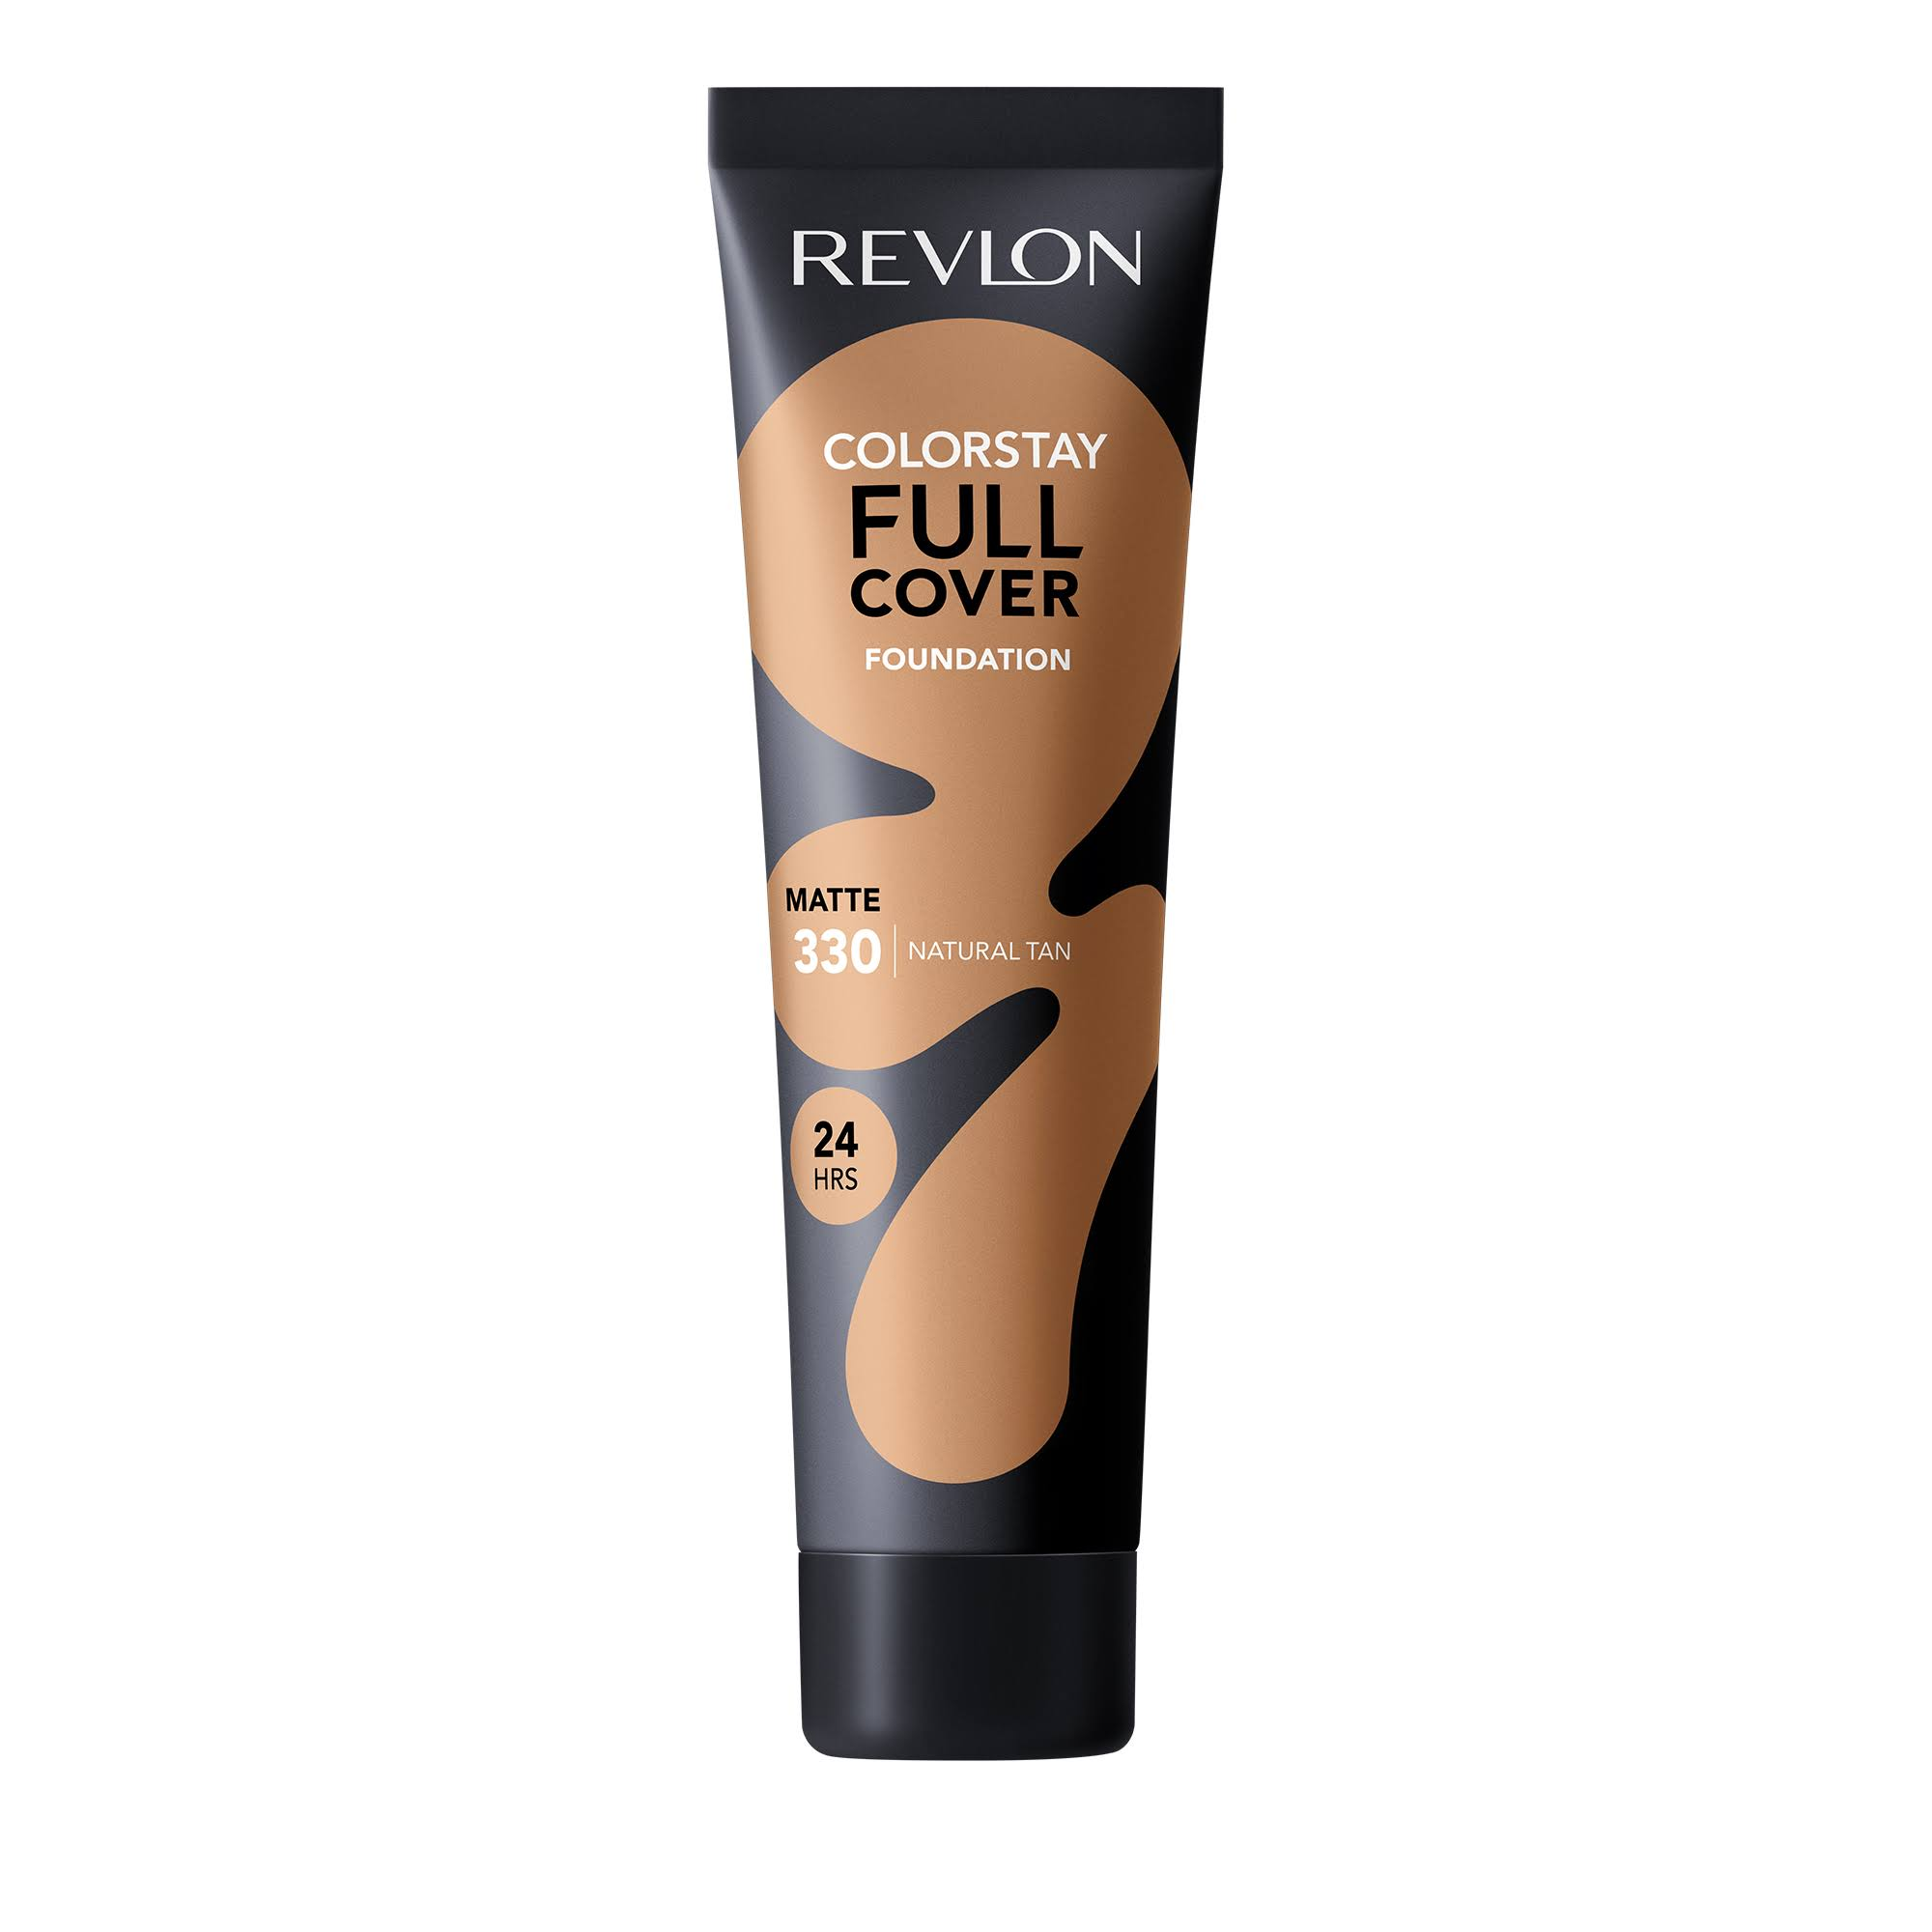 Revlon Colorstay Full Cover Foundation - 330 Natural Tan, 1oz